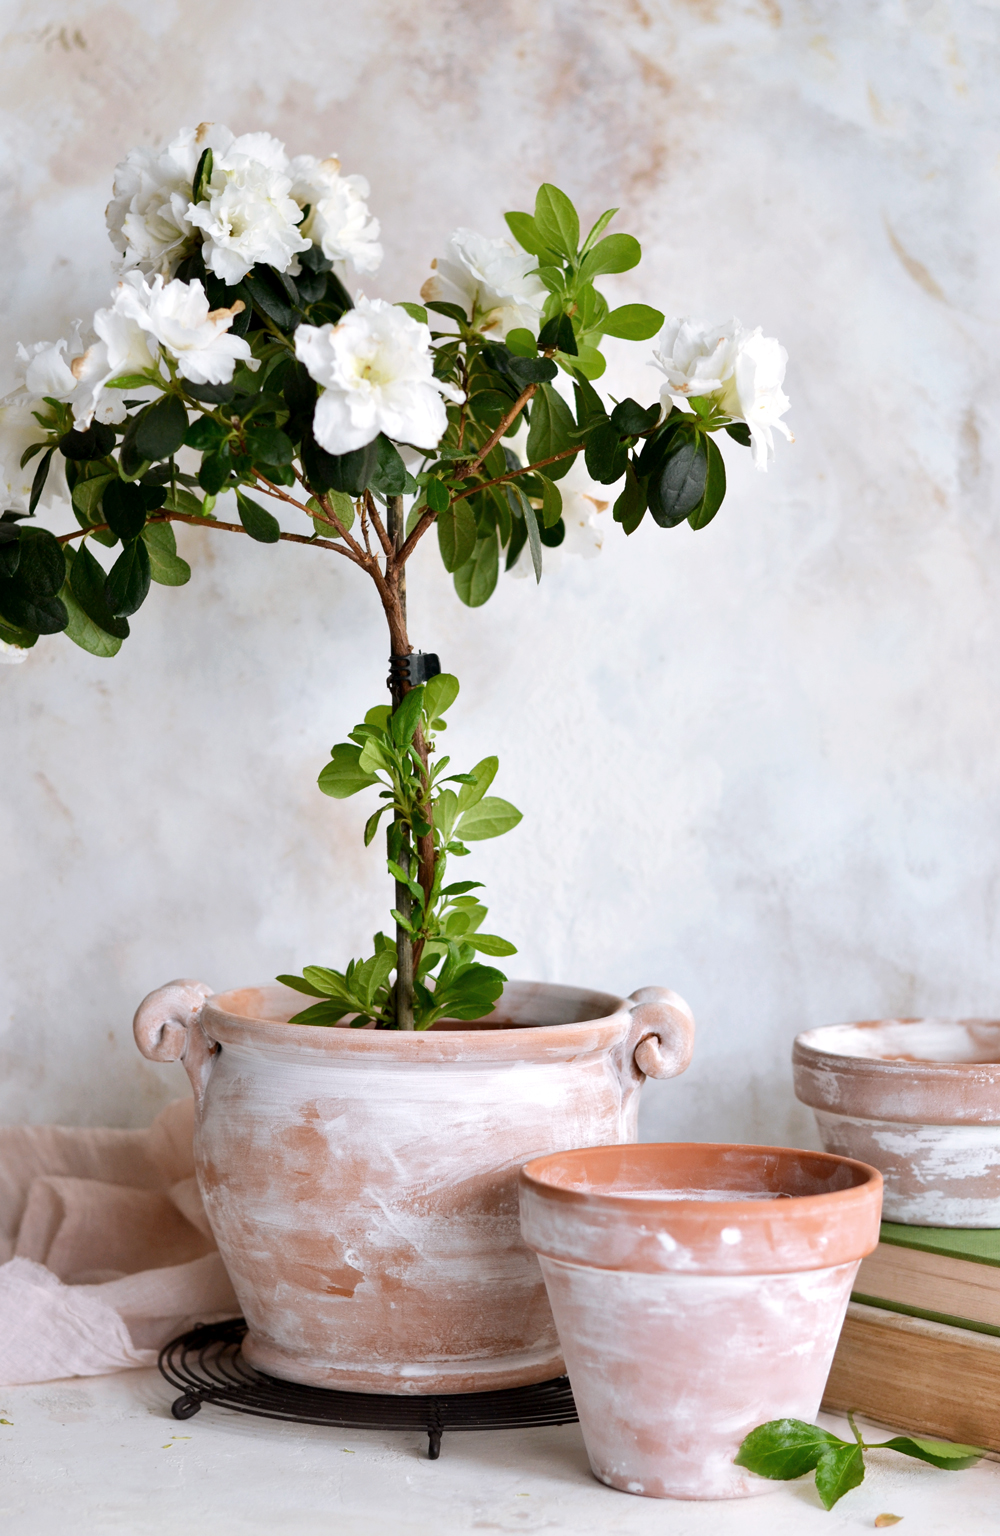 DIIY Chalk Distressed Terracotta Pots - Paint gorgeous chalk distressed terracotta pots in just 5 minutes! Create interesting dripping effects and give new terracotta pots an aged, antique, old world look makeover.